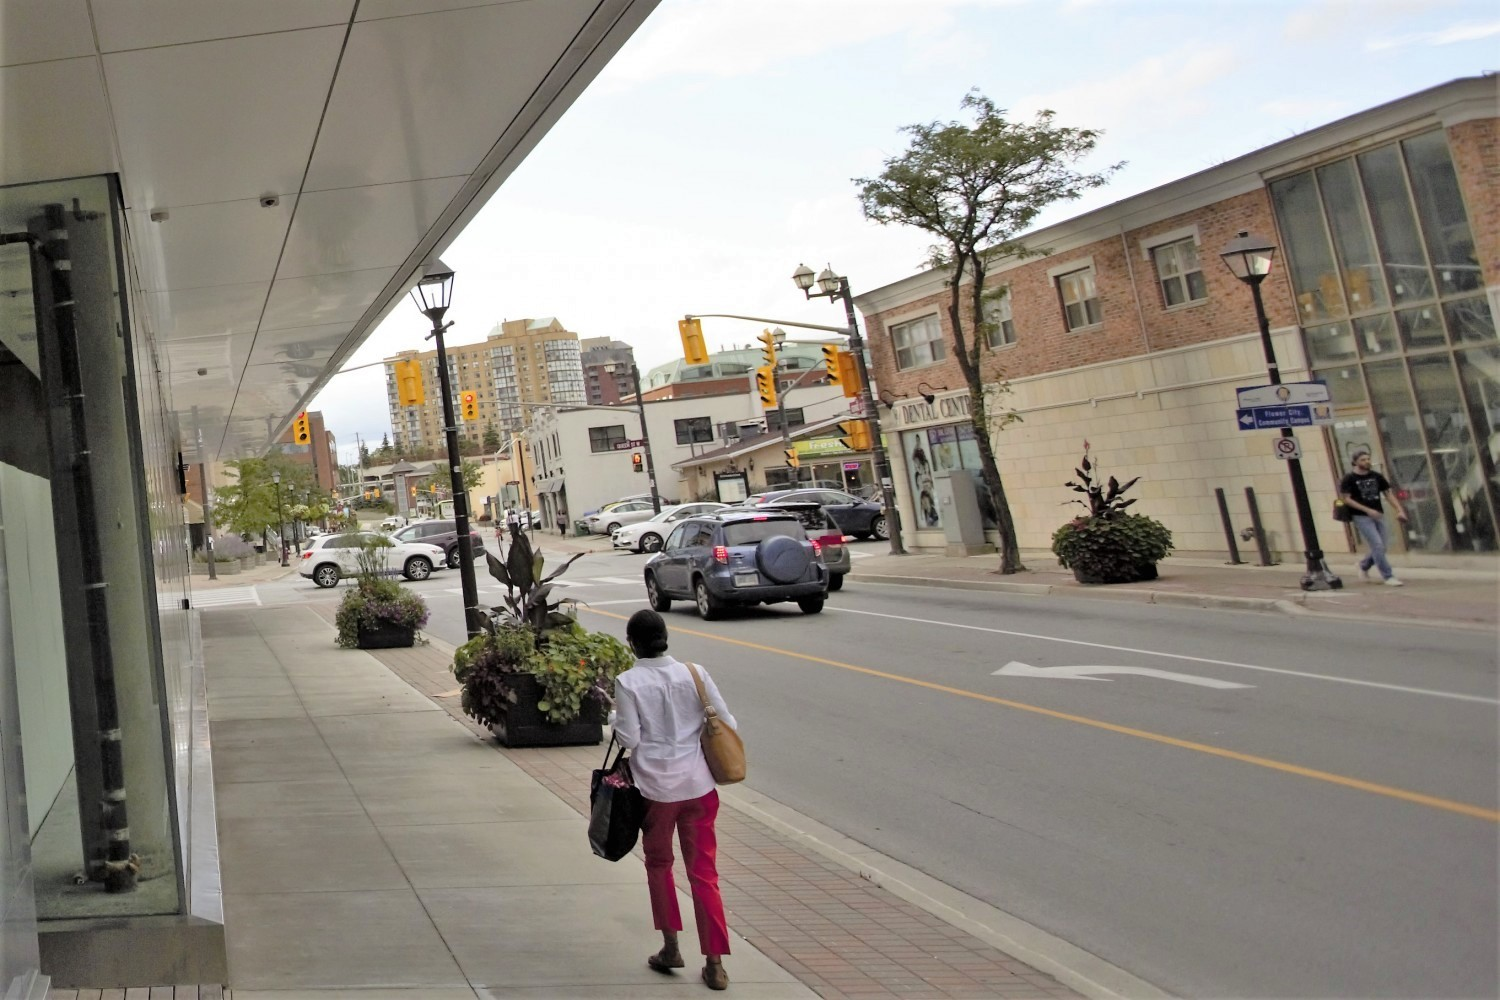 'It's a shame to come and show people this is downtown Brampton': Businesses skeptical of City's plans for rejuvenation